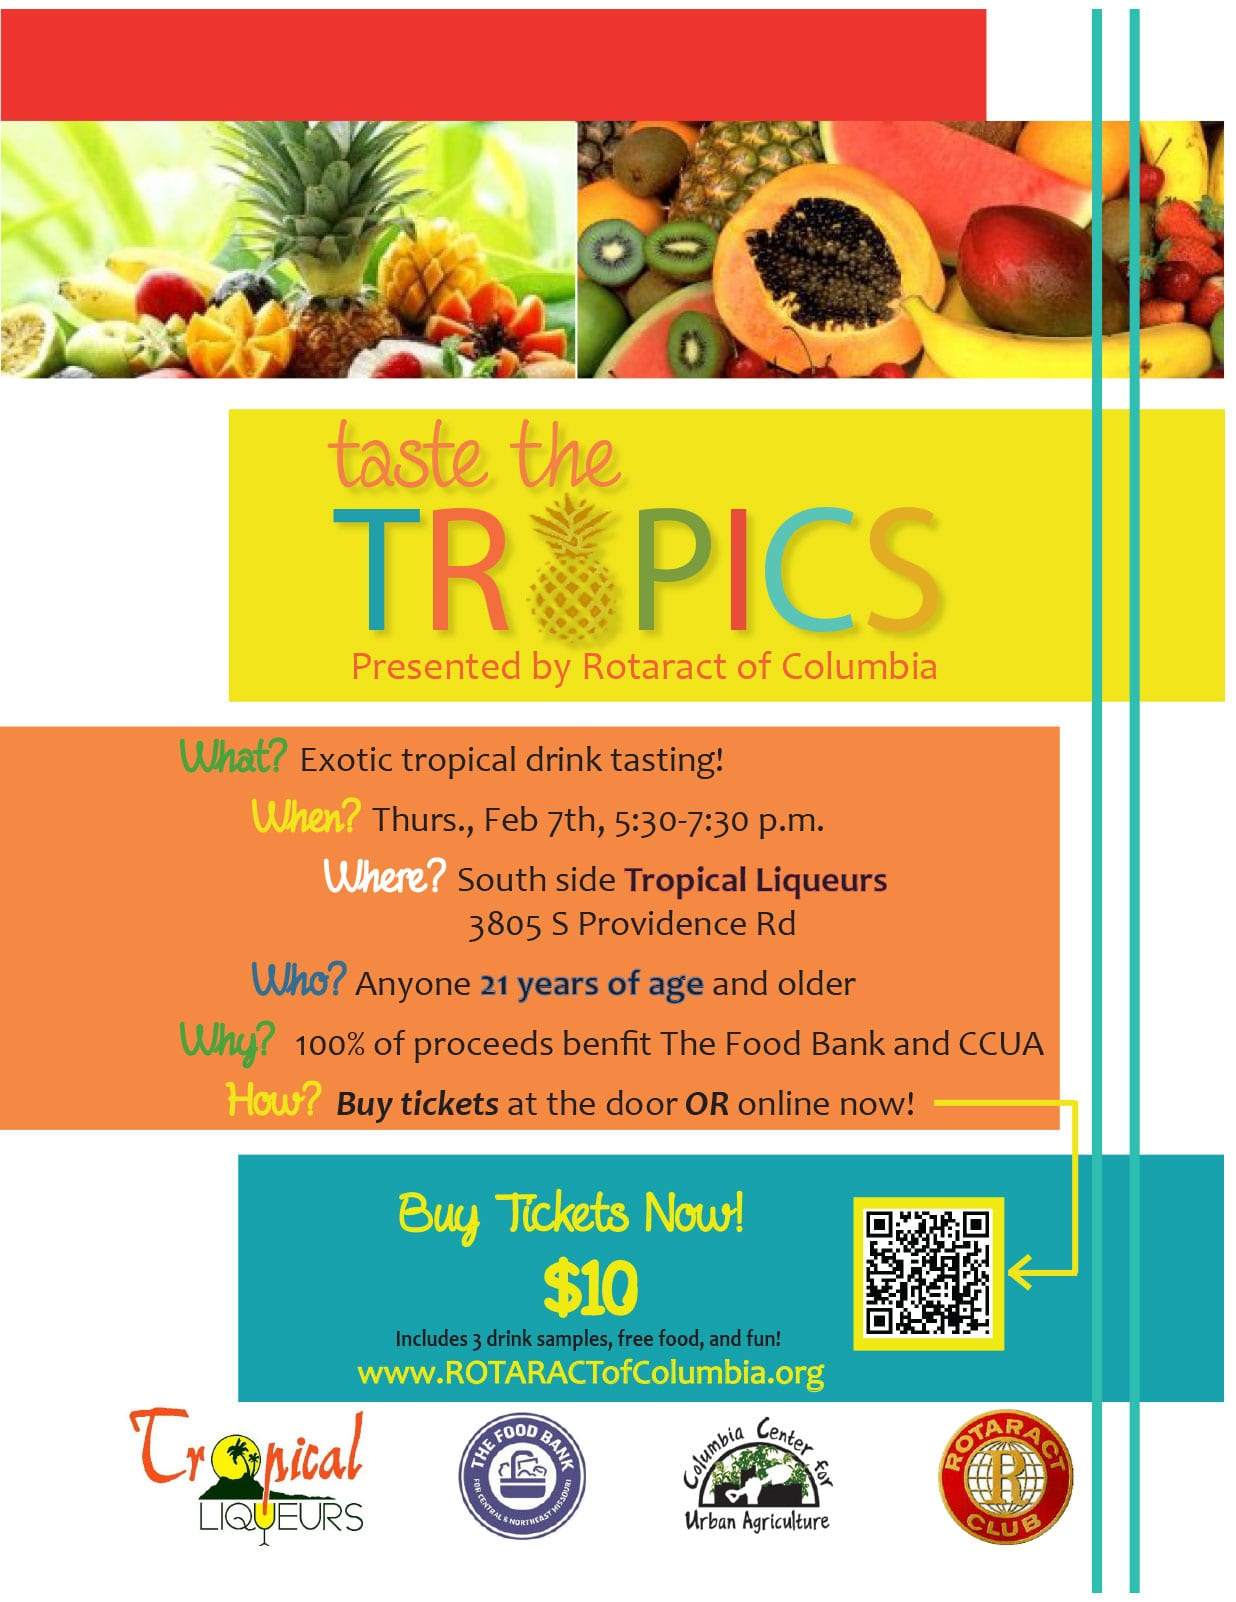 rotaract of columbia taste the tropics fundraiser rotary to the right is the flyer for our fundraiser taste the tropics please click it to enlarge the image we are raising fund for the food bank and columbia